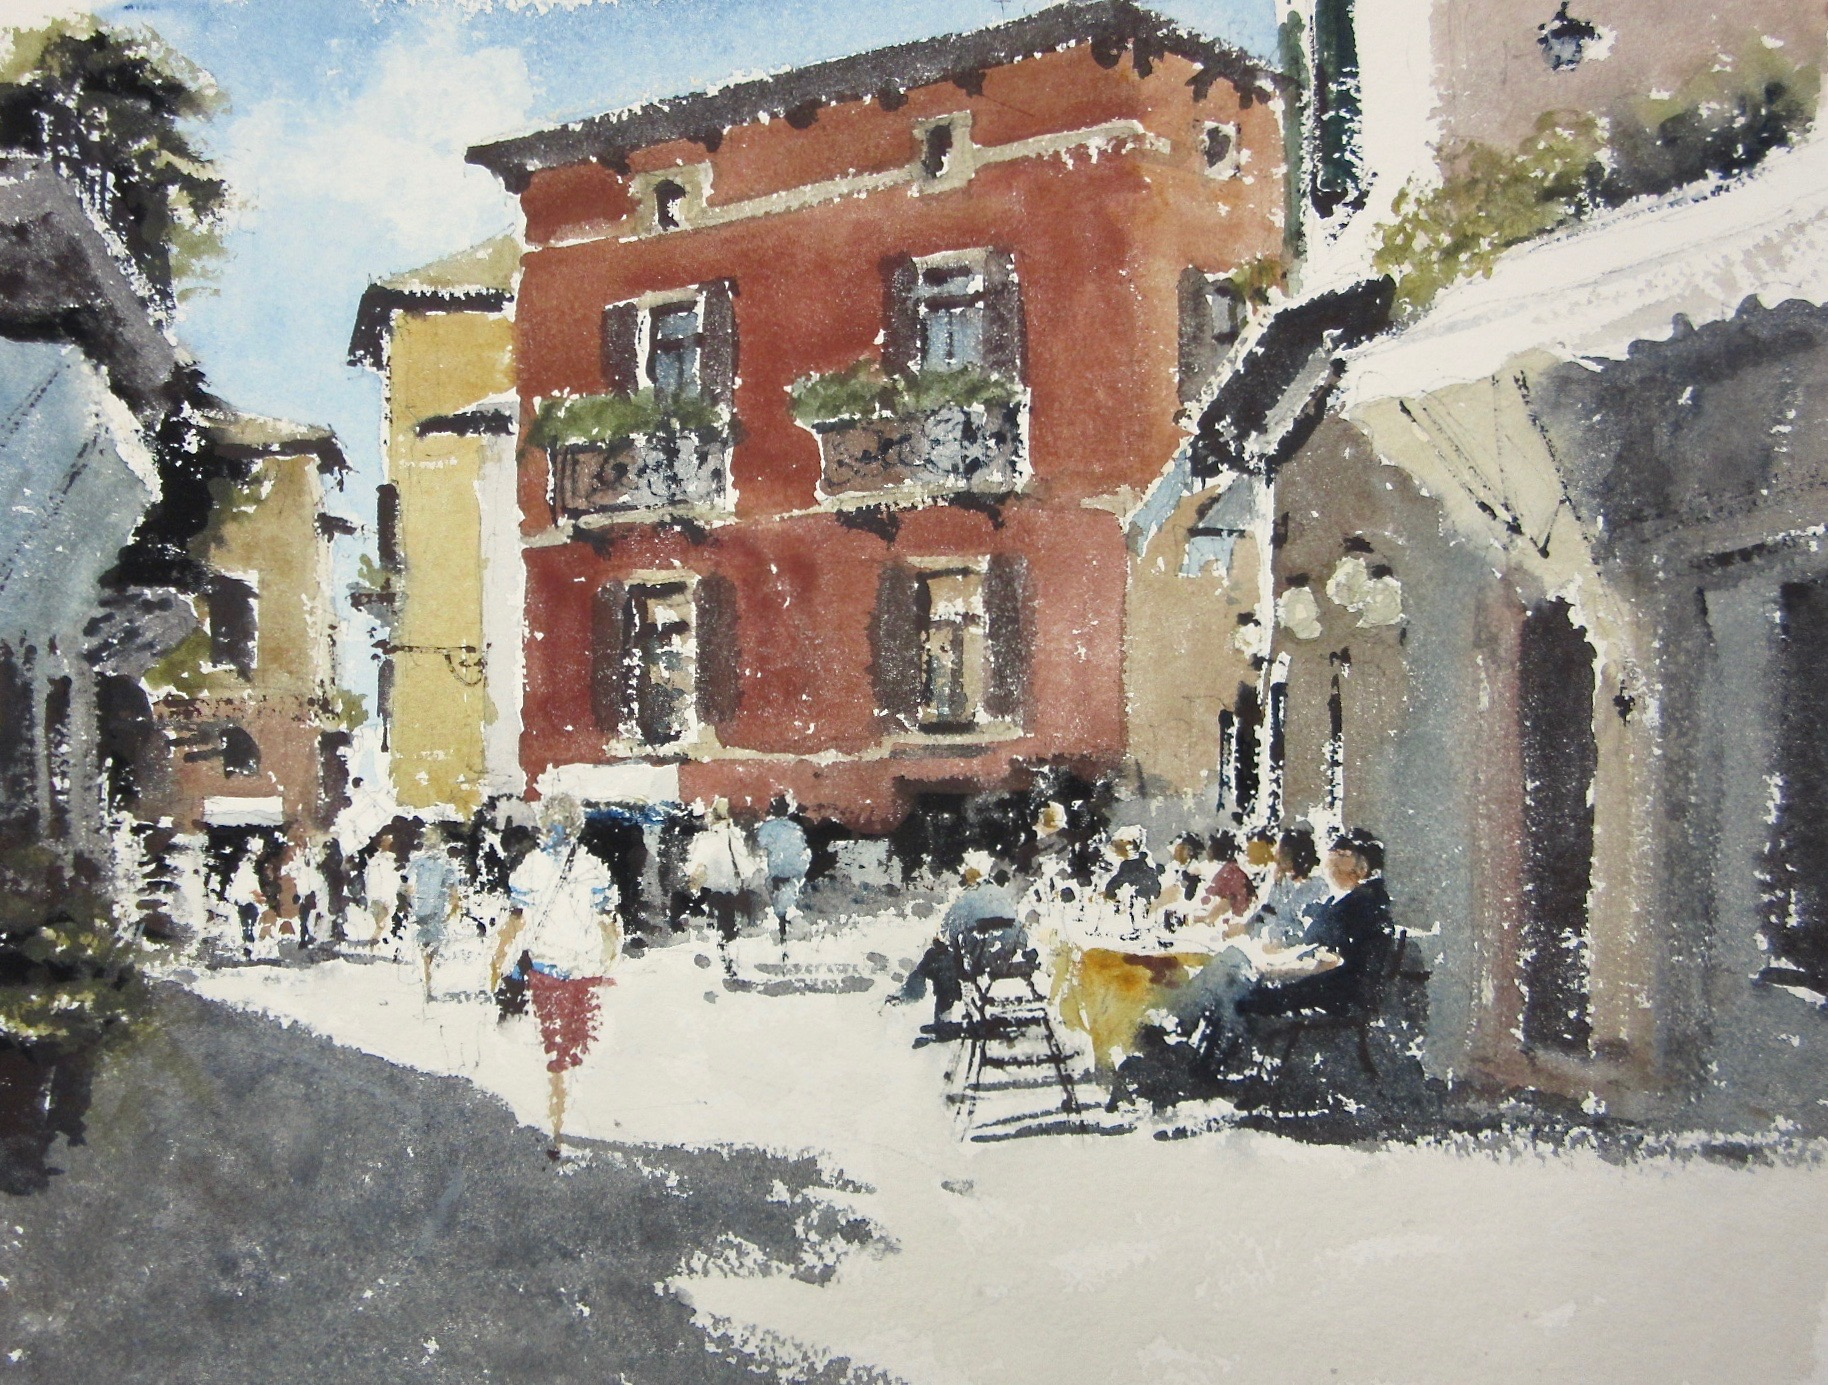 The Square Malcesine Italy: 11 x 15 .5 in: £750